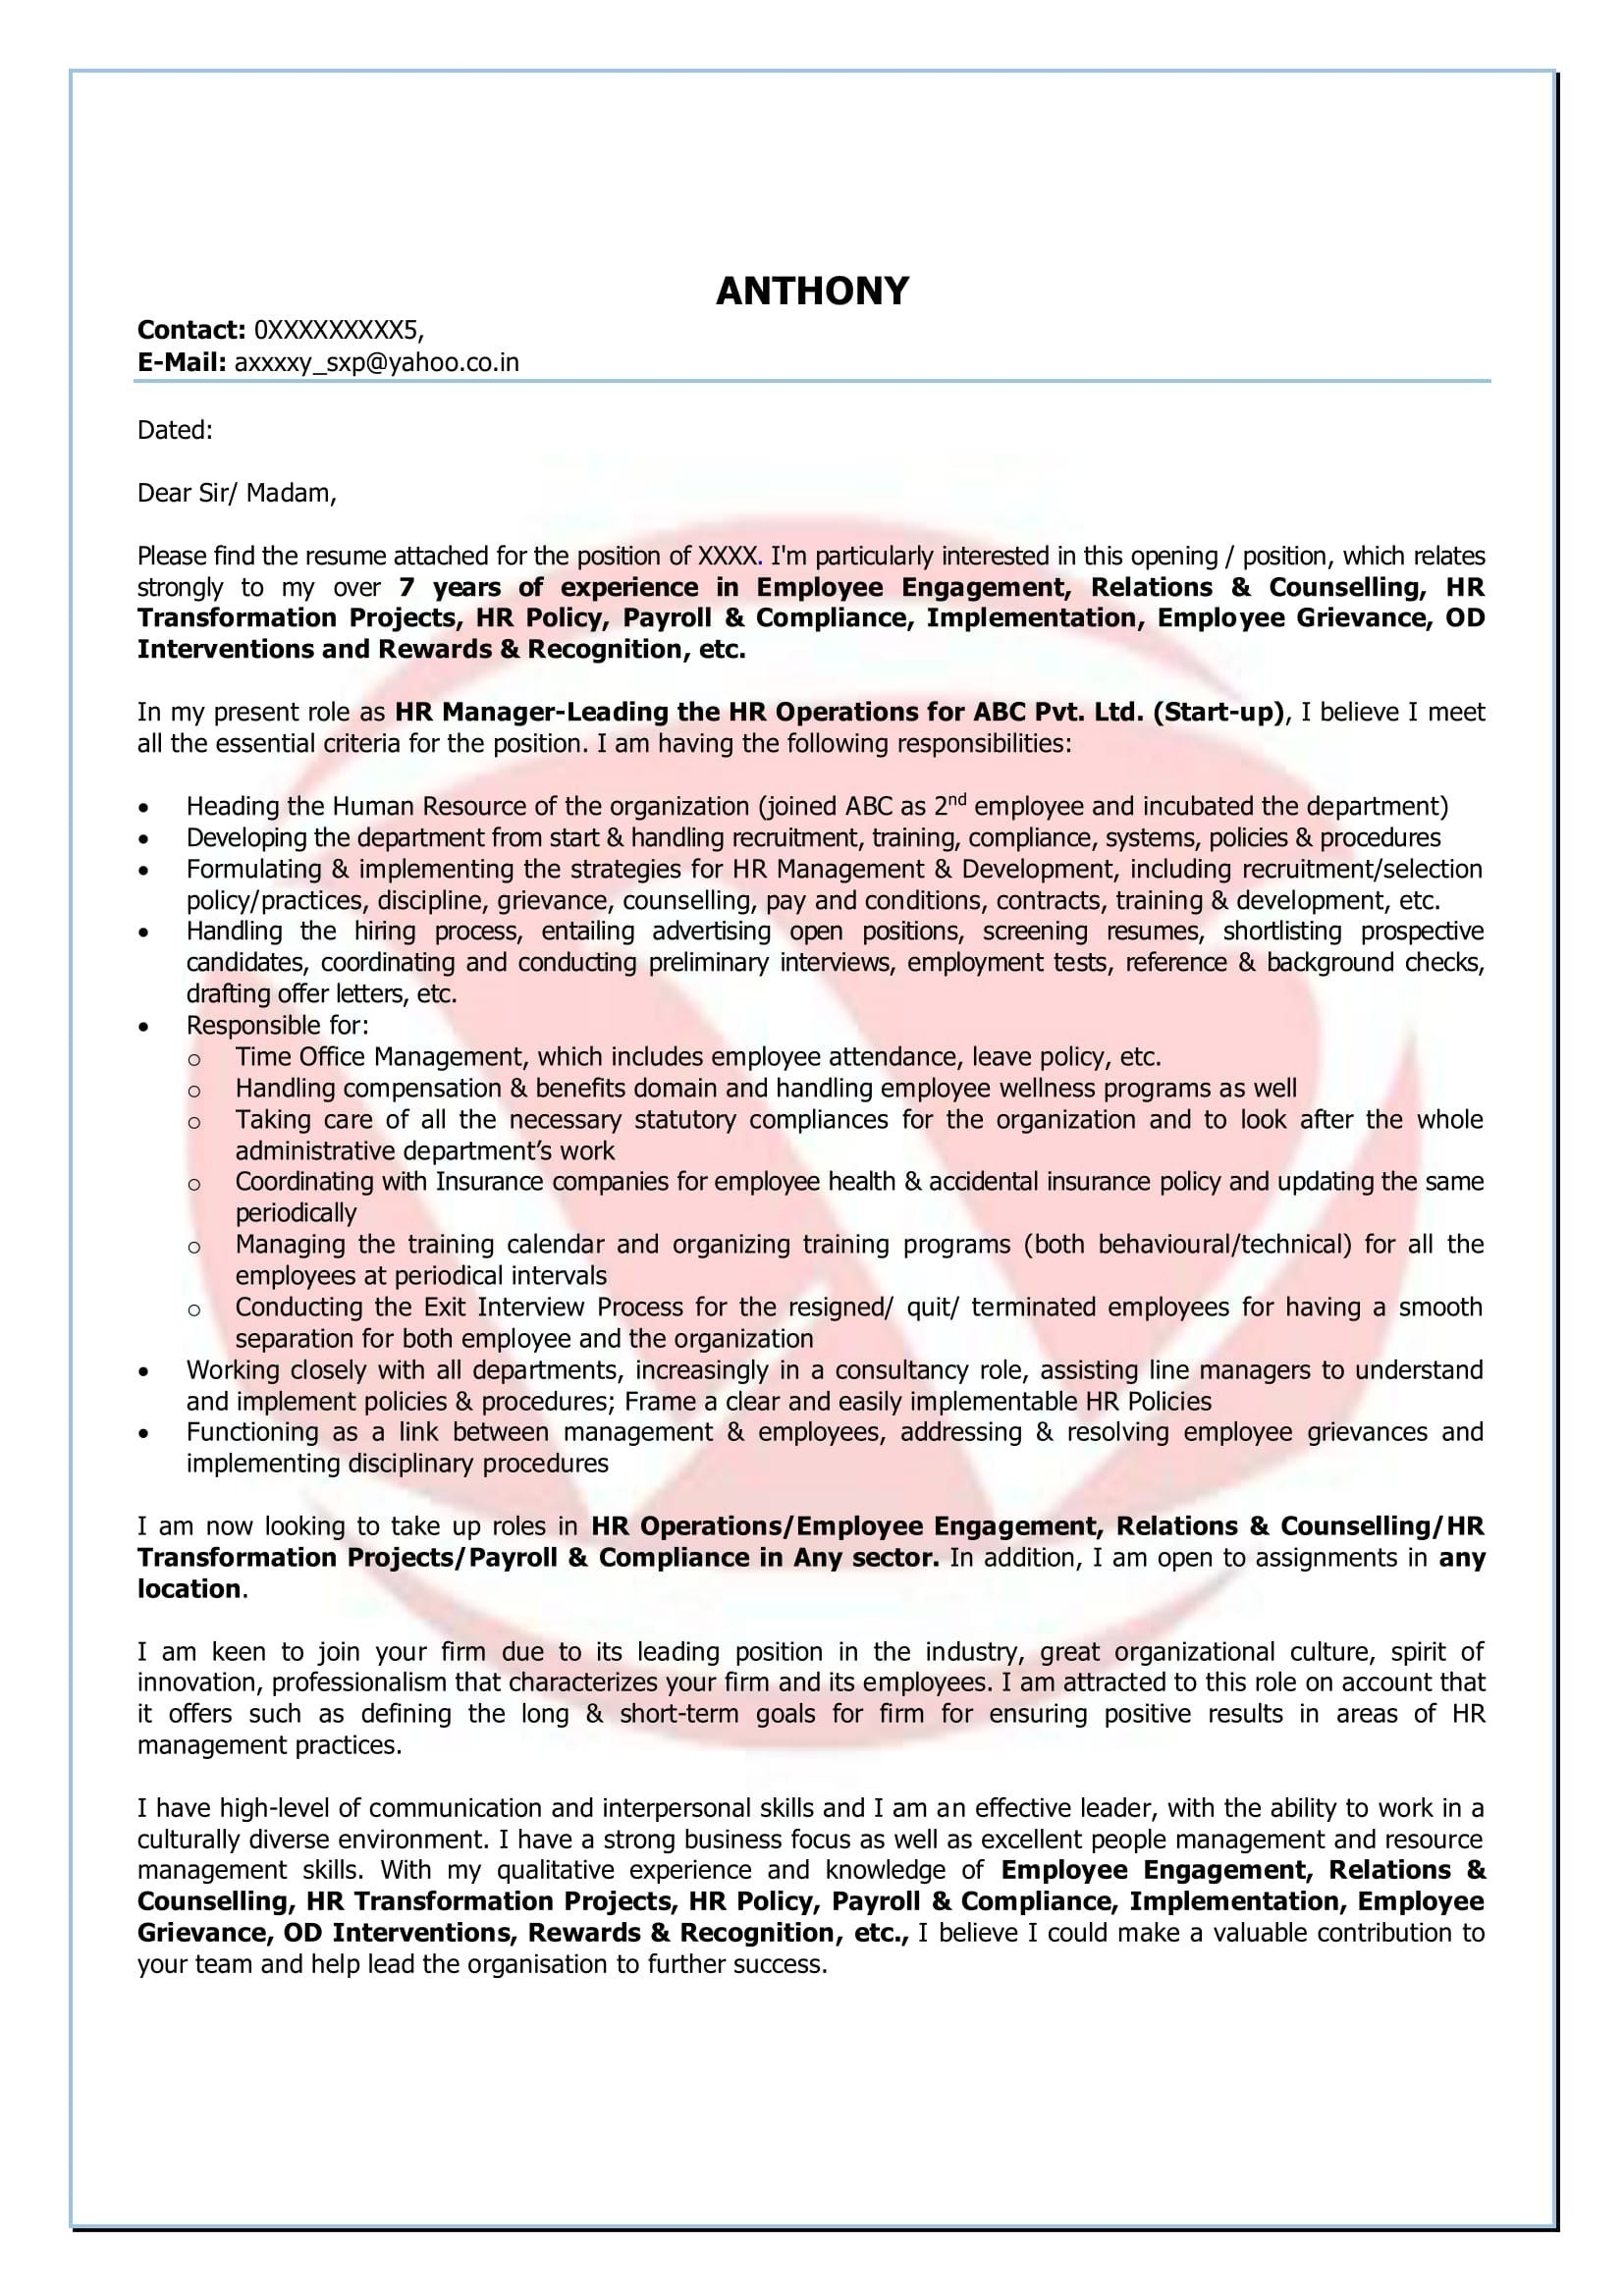 Reference Letter Template for A Friend - Letter Re Mendation for A Job Word New Letter Re Mendation for